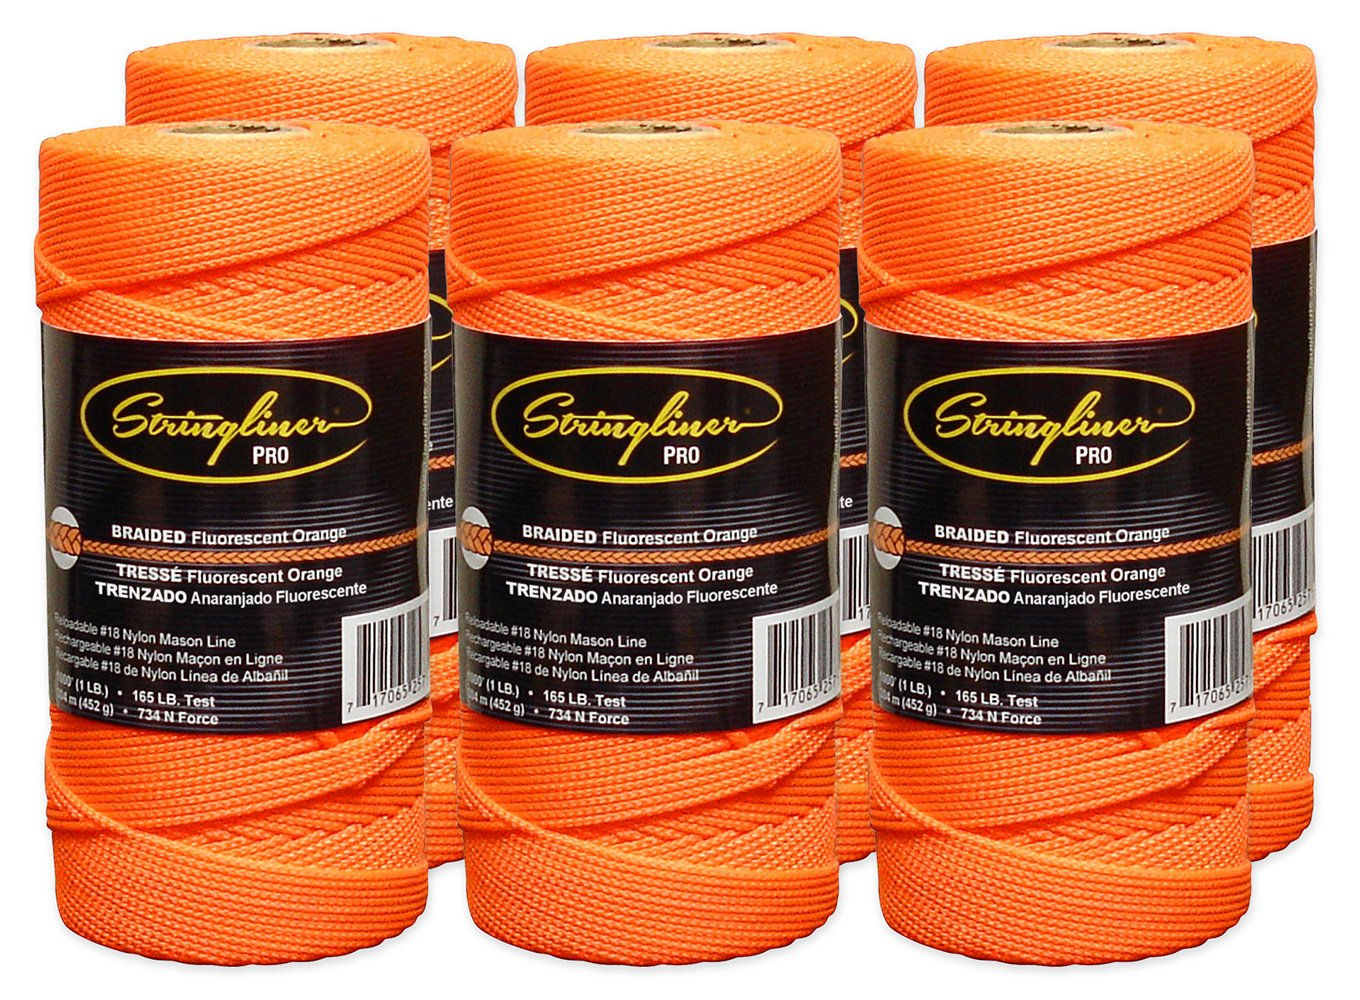 Stringliner Braided Mason Line Replacement Roll Contractor Pack 1,000' - Orange (Pack of 6) - SL35759CPK by Stringliner